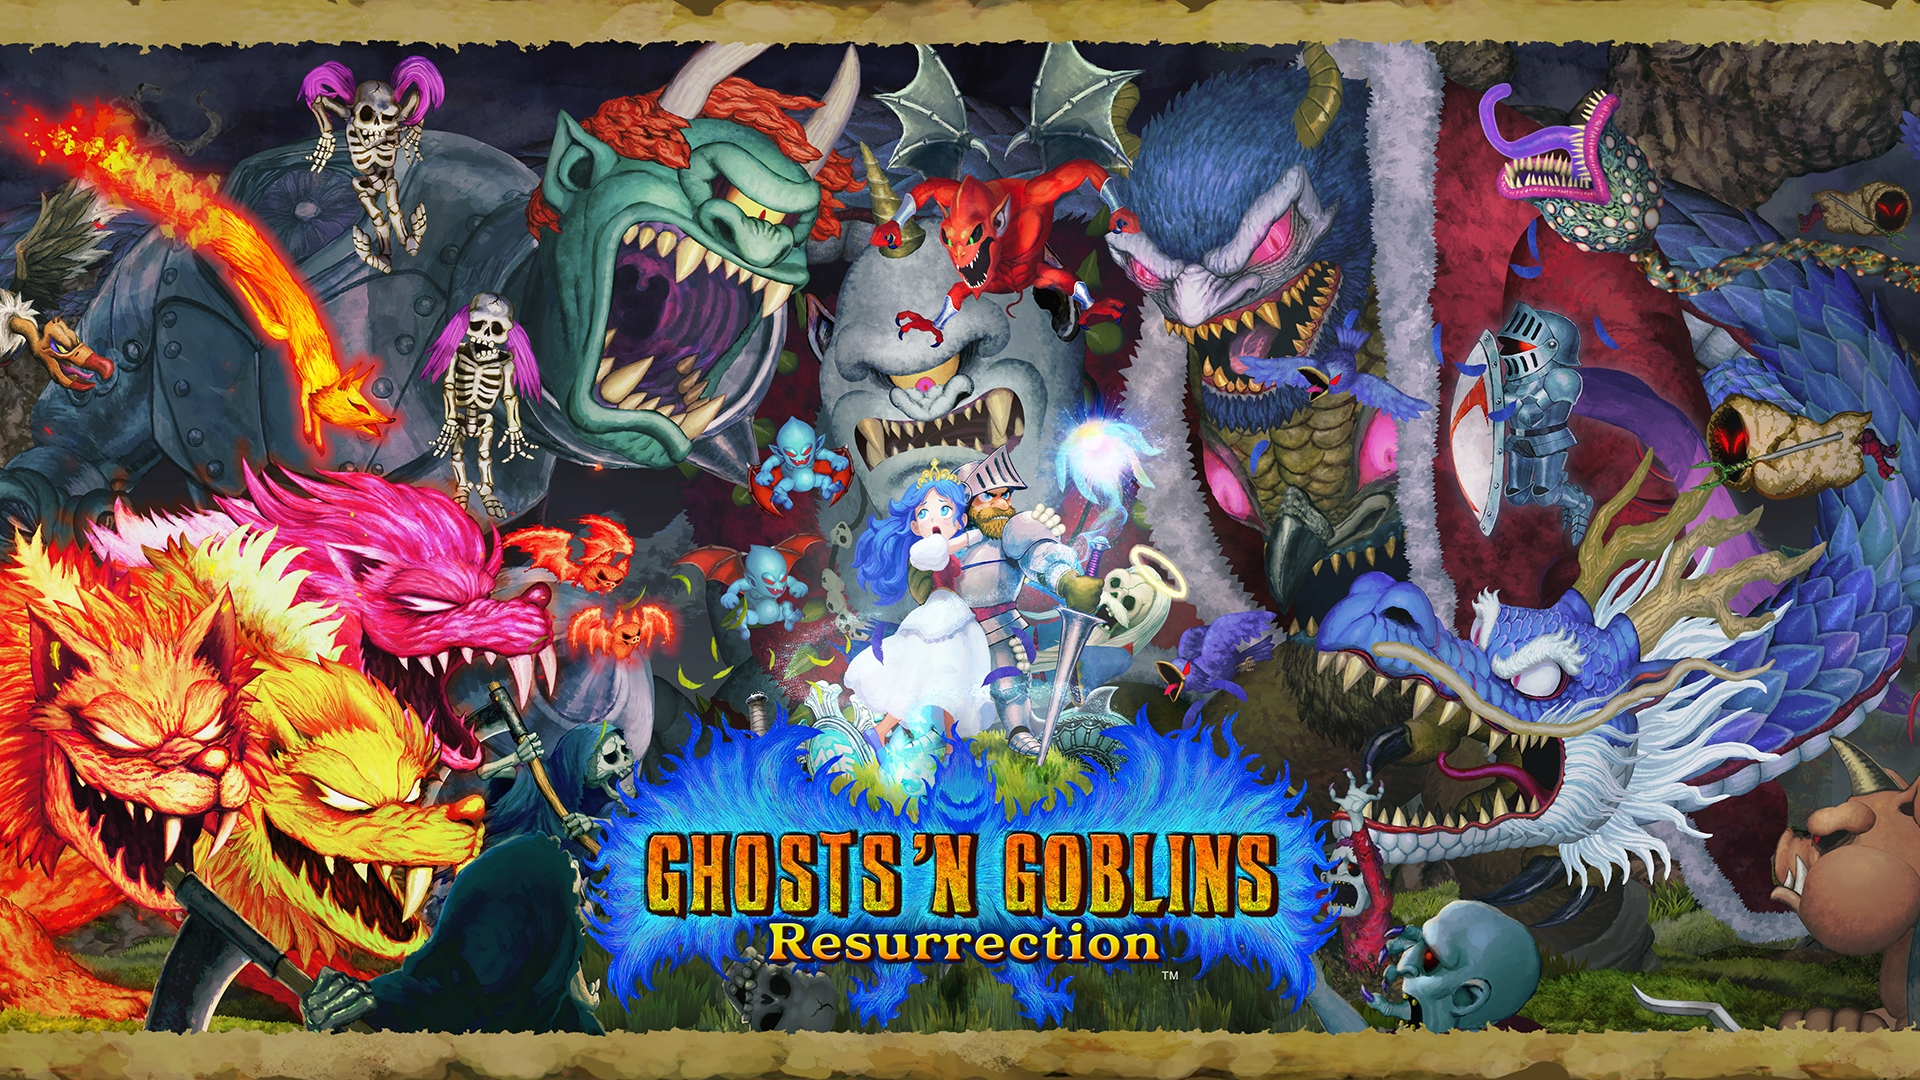 Capcom Announces Ghosts 'n Goblins Resurrection Launches February 25 For Nintendo Switch